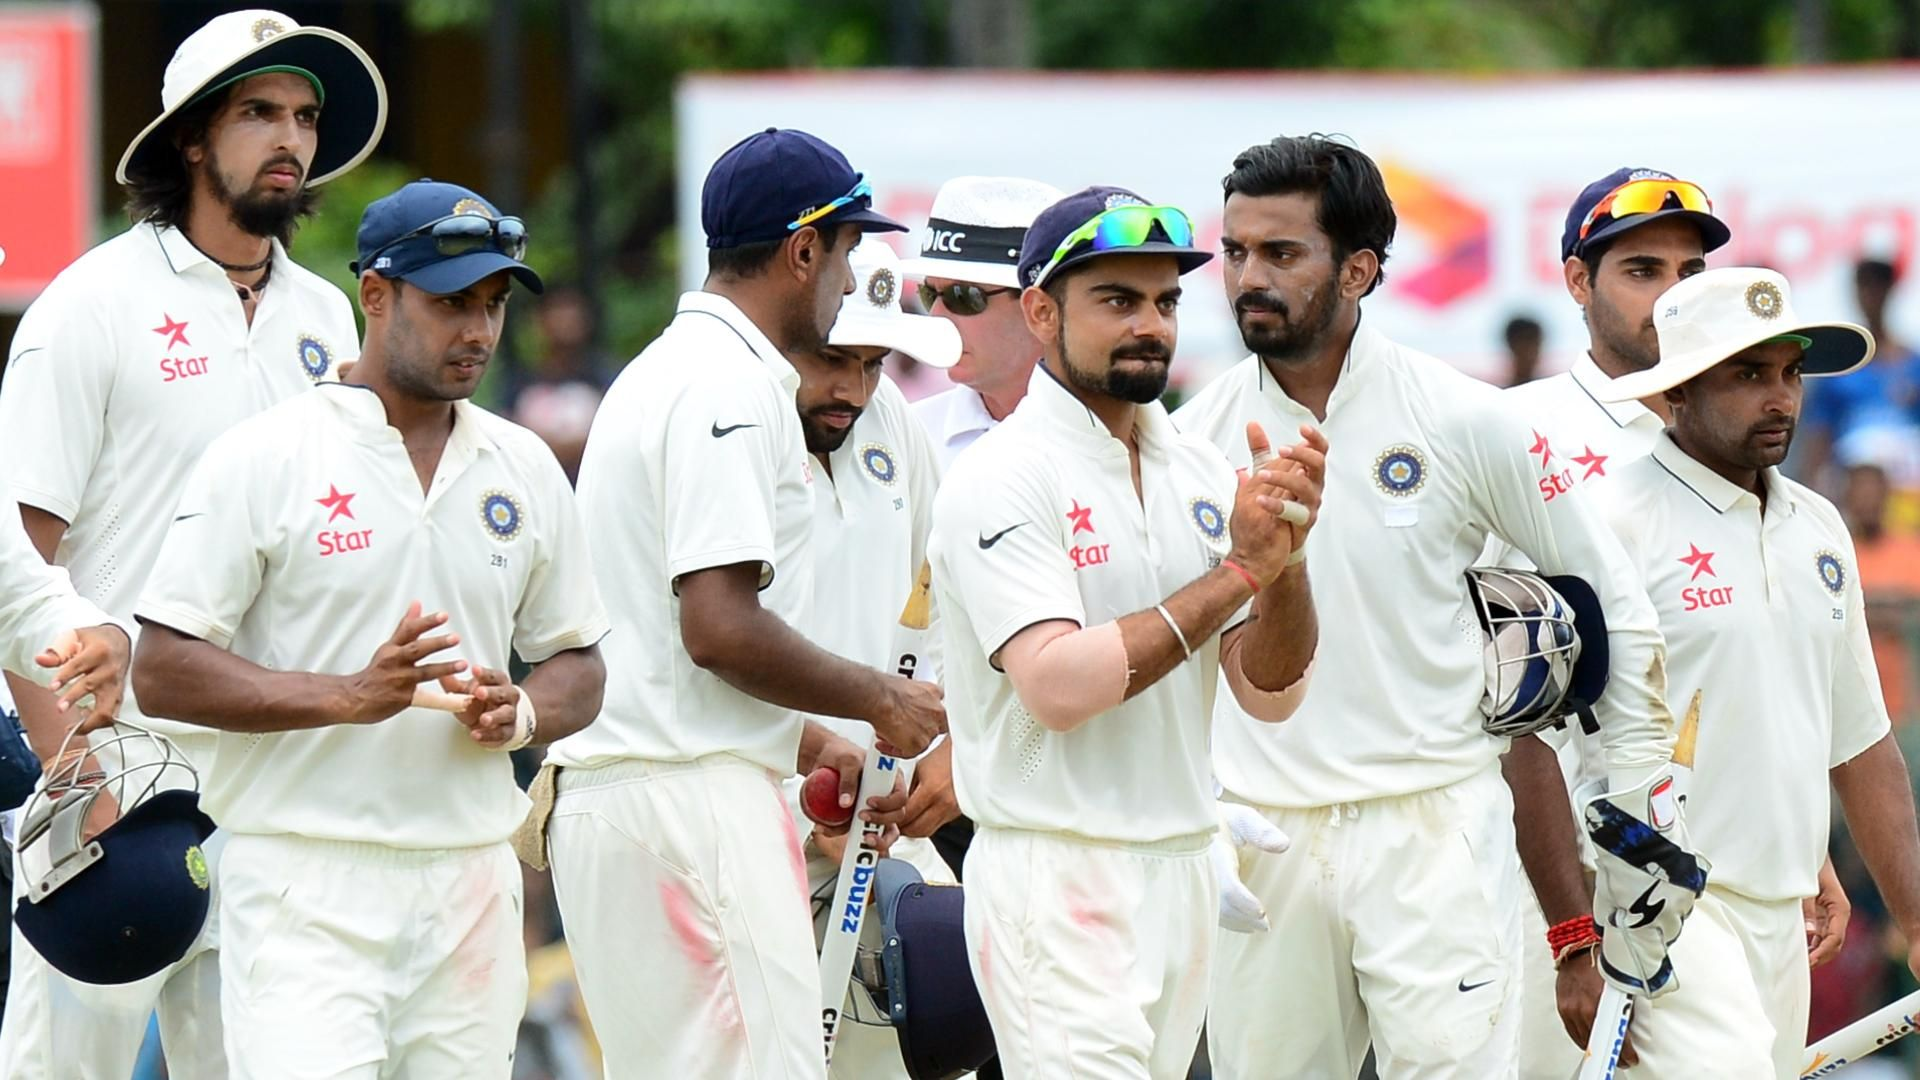 Second day bowling our best in two years virat kohli cricket